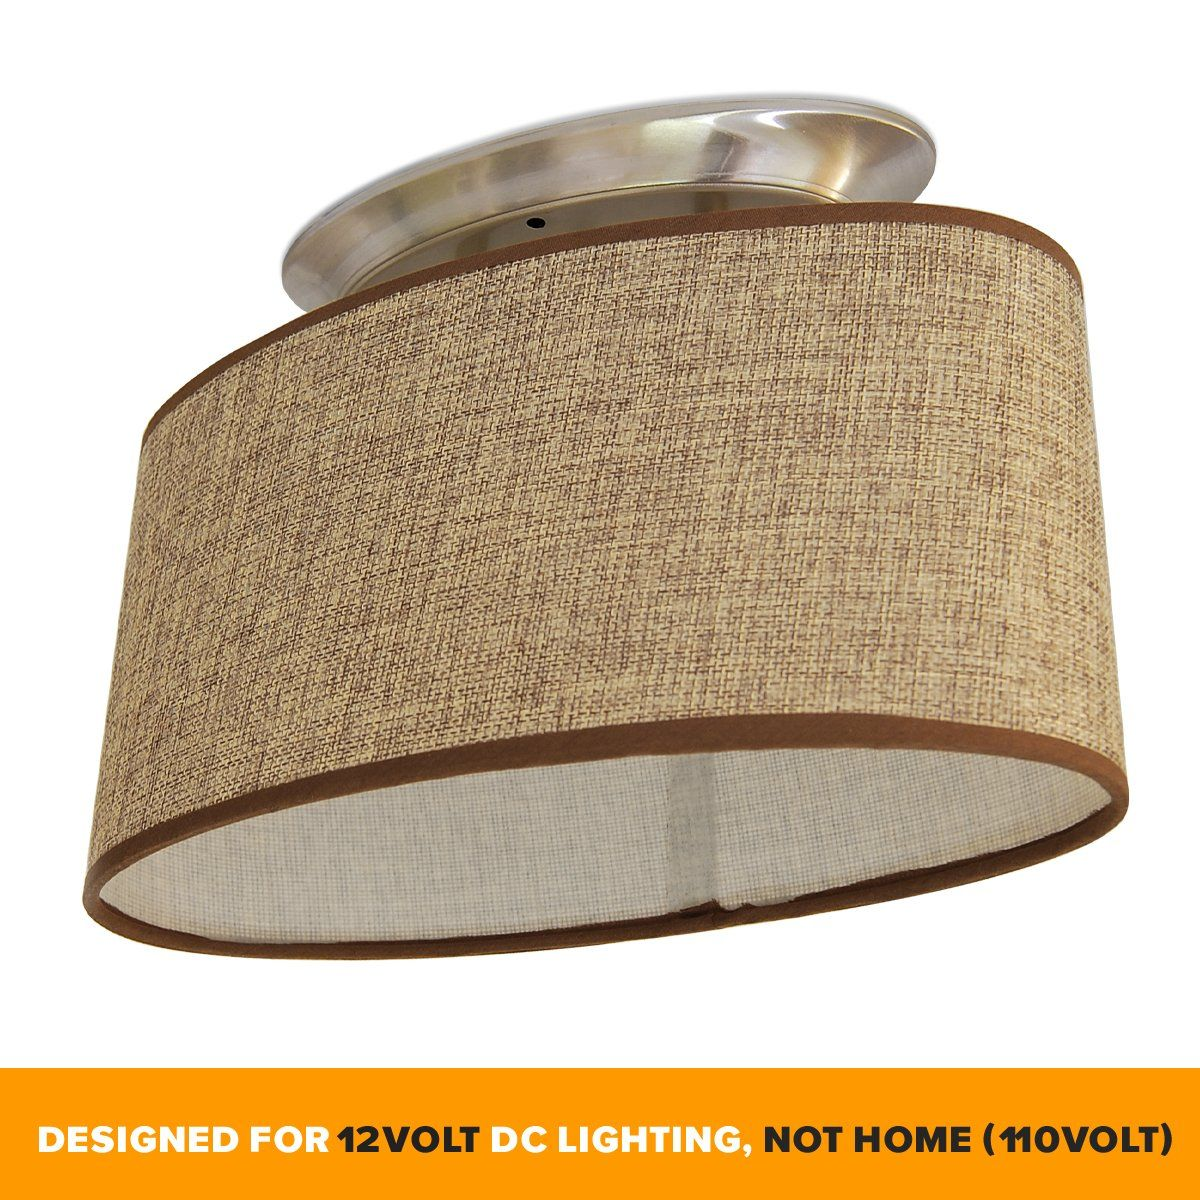 Dream Lighting 12volt Dc Fabric Light Fixture Commercial Decor Lights Brown Burlap Highelliptical 12 Volt Light Fixtures Led Light Fixtures Ceiling Lamp Shades